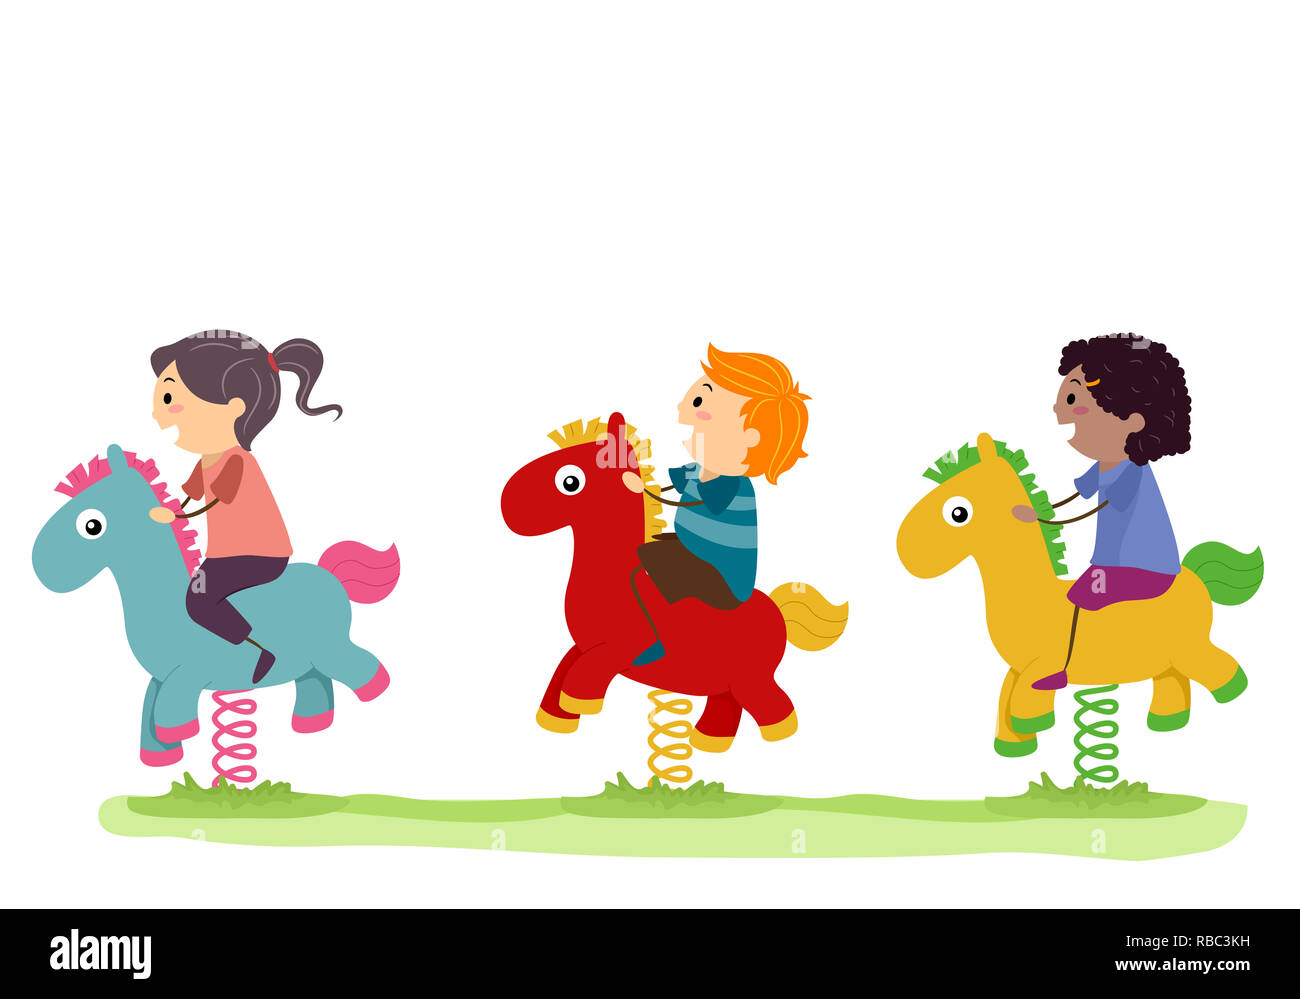 Illustration Of Stickman Kids Riding A Horse Rocker In The Playground Stock Photo Alamy